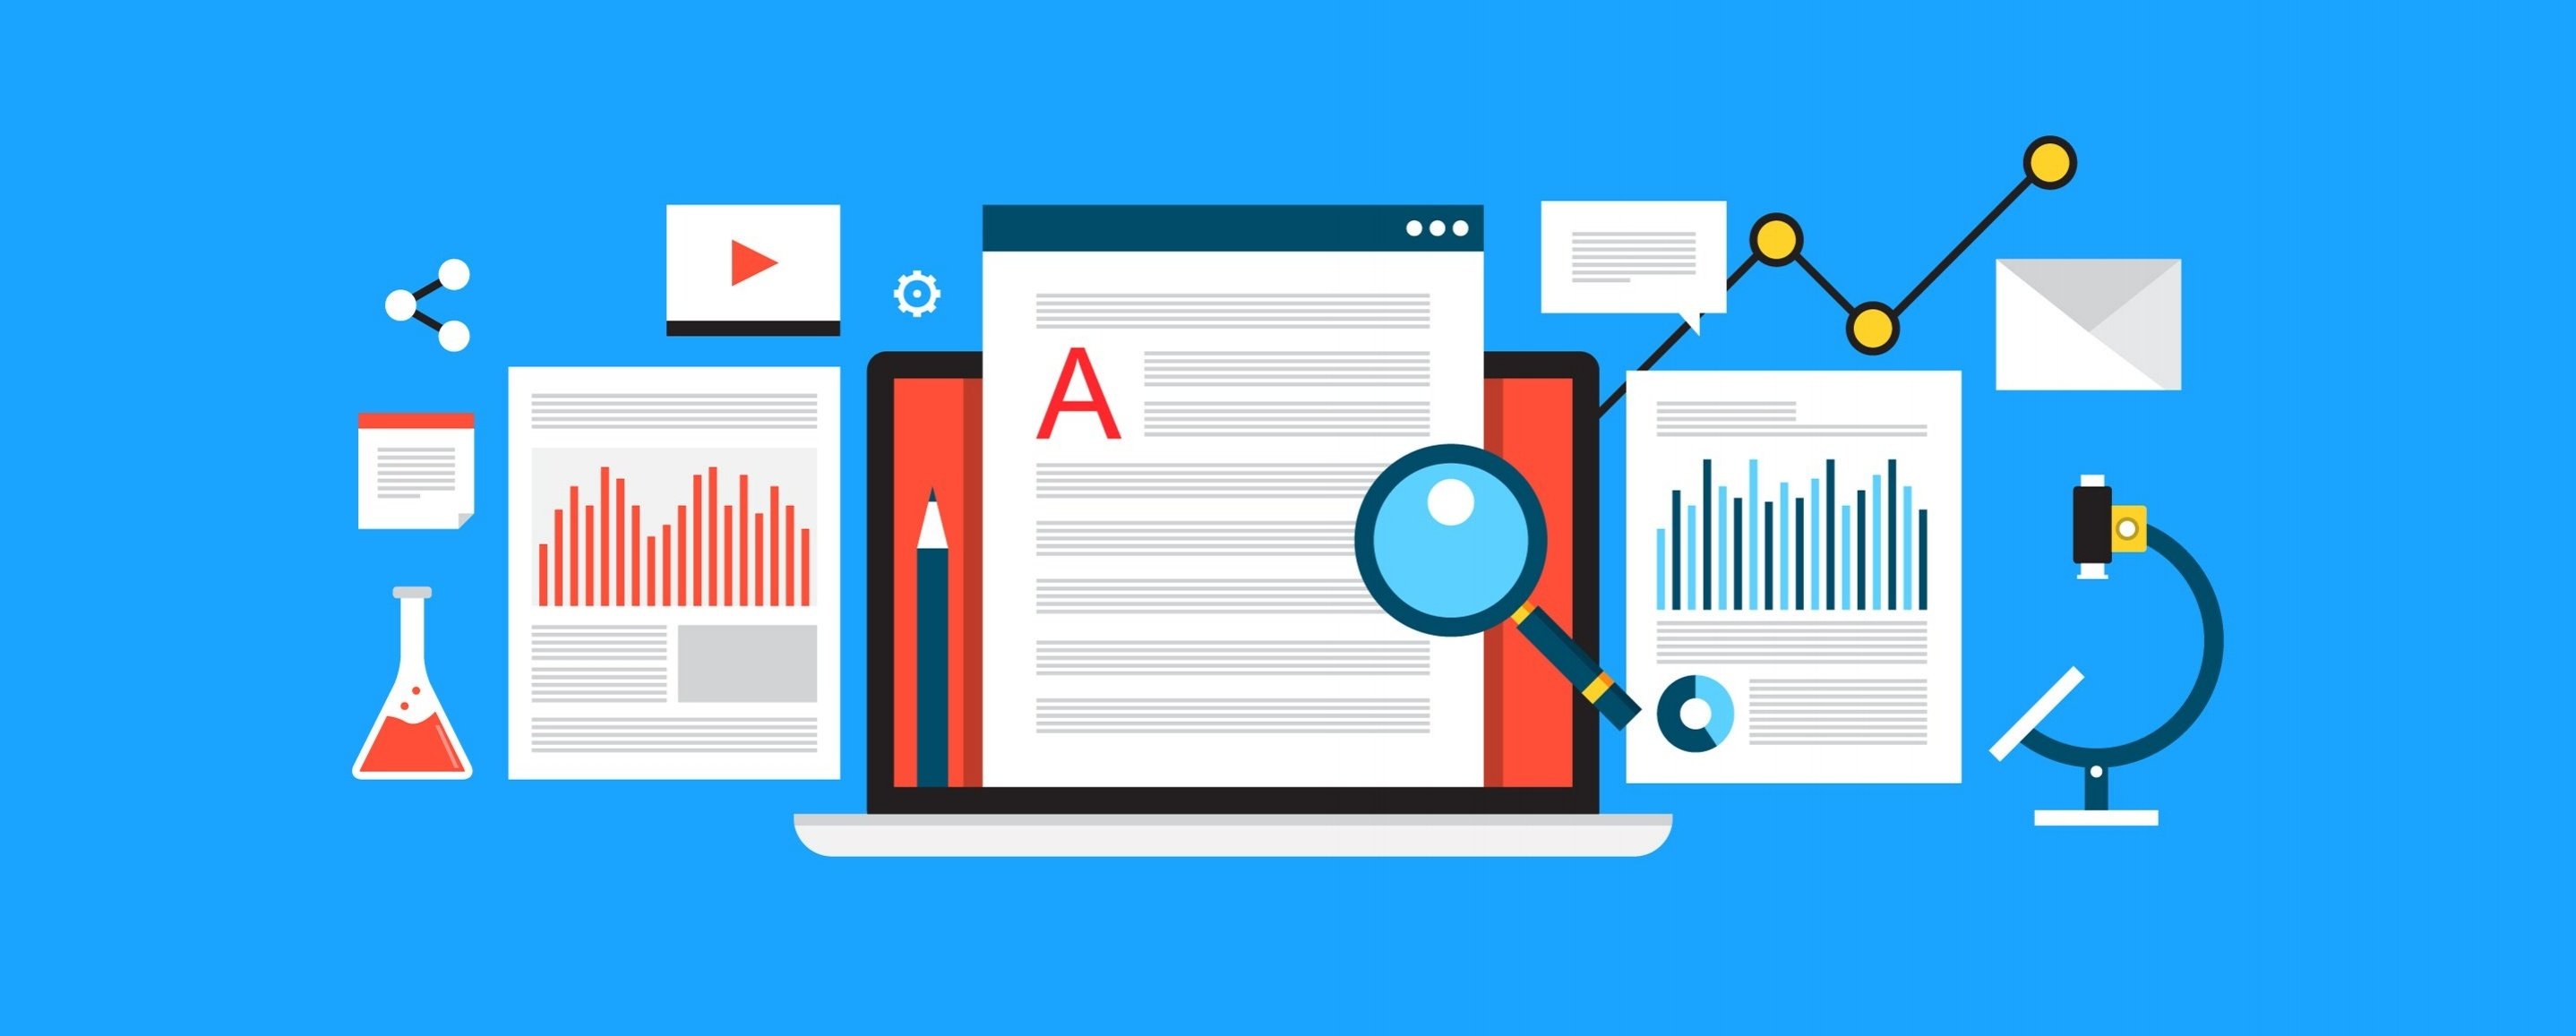 why should you implement a content audit-427128-edited